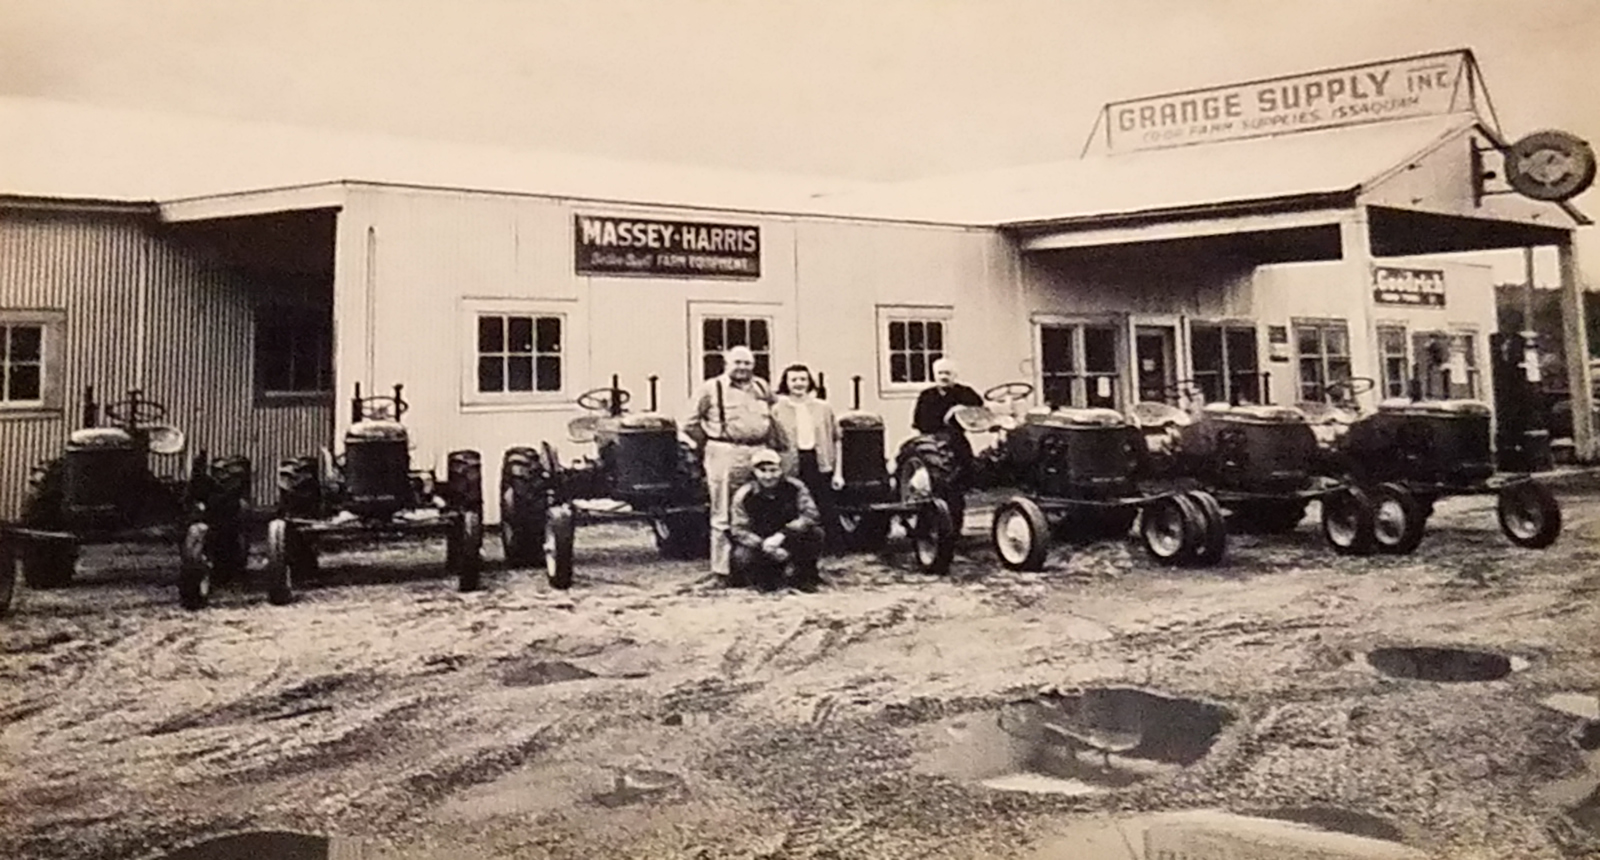 Grange Supply Inc. Historic Photo of Tractors